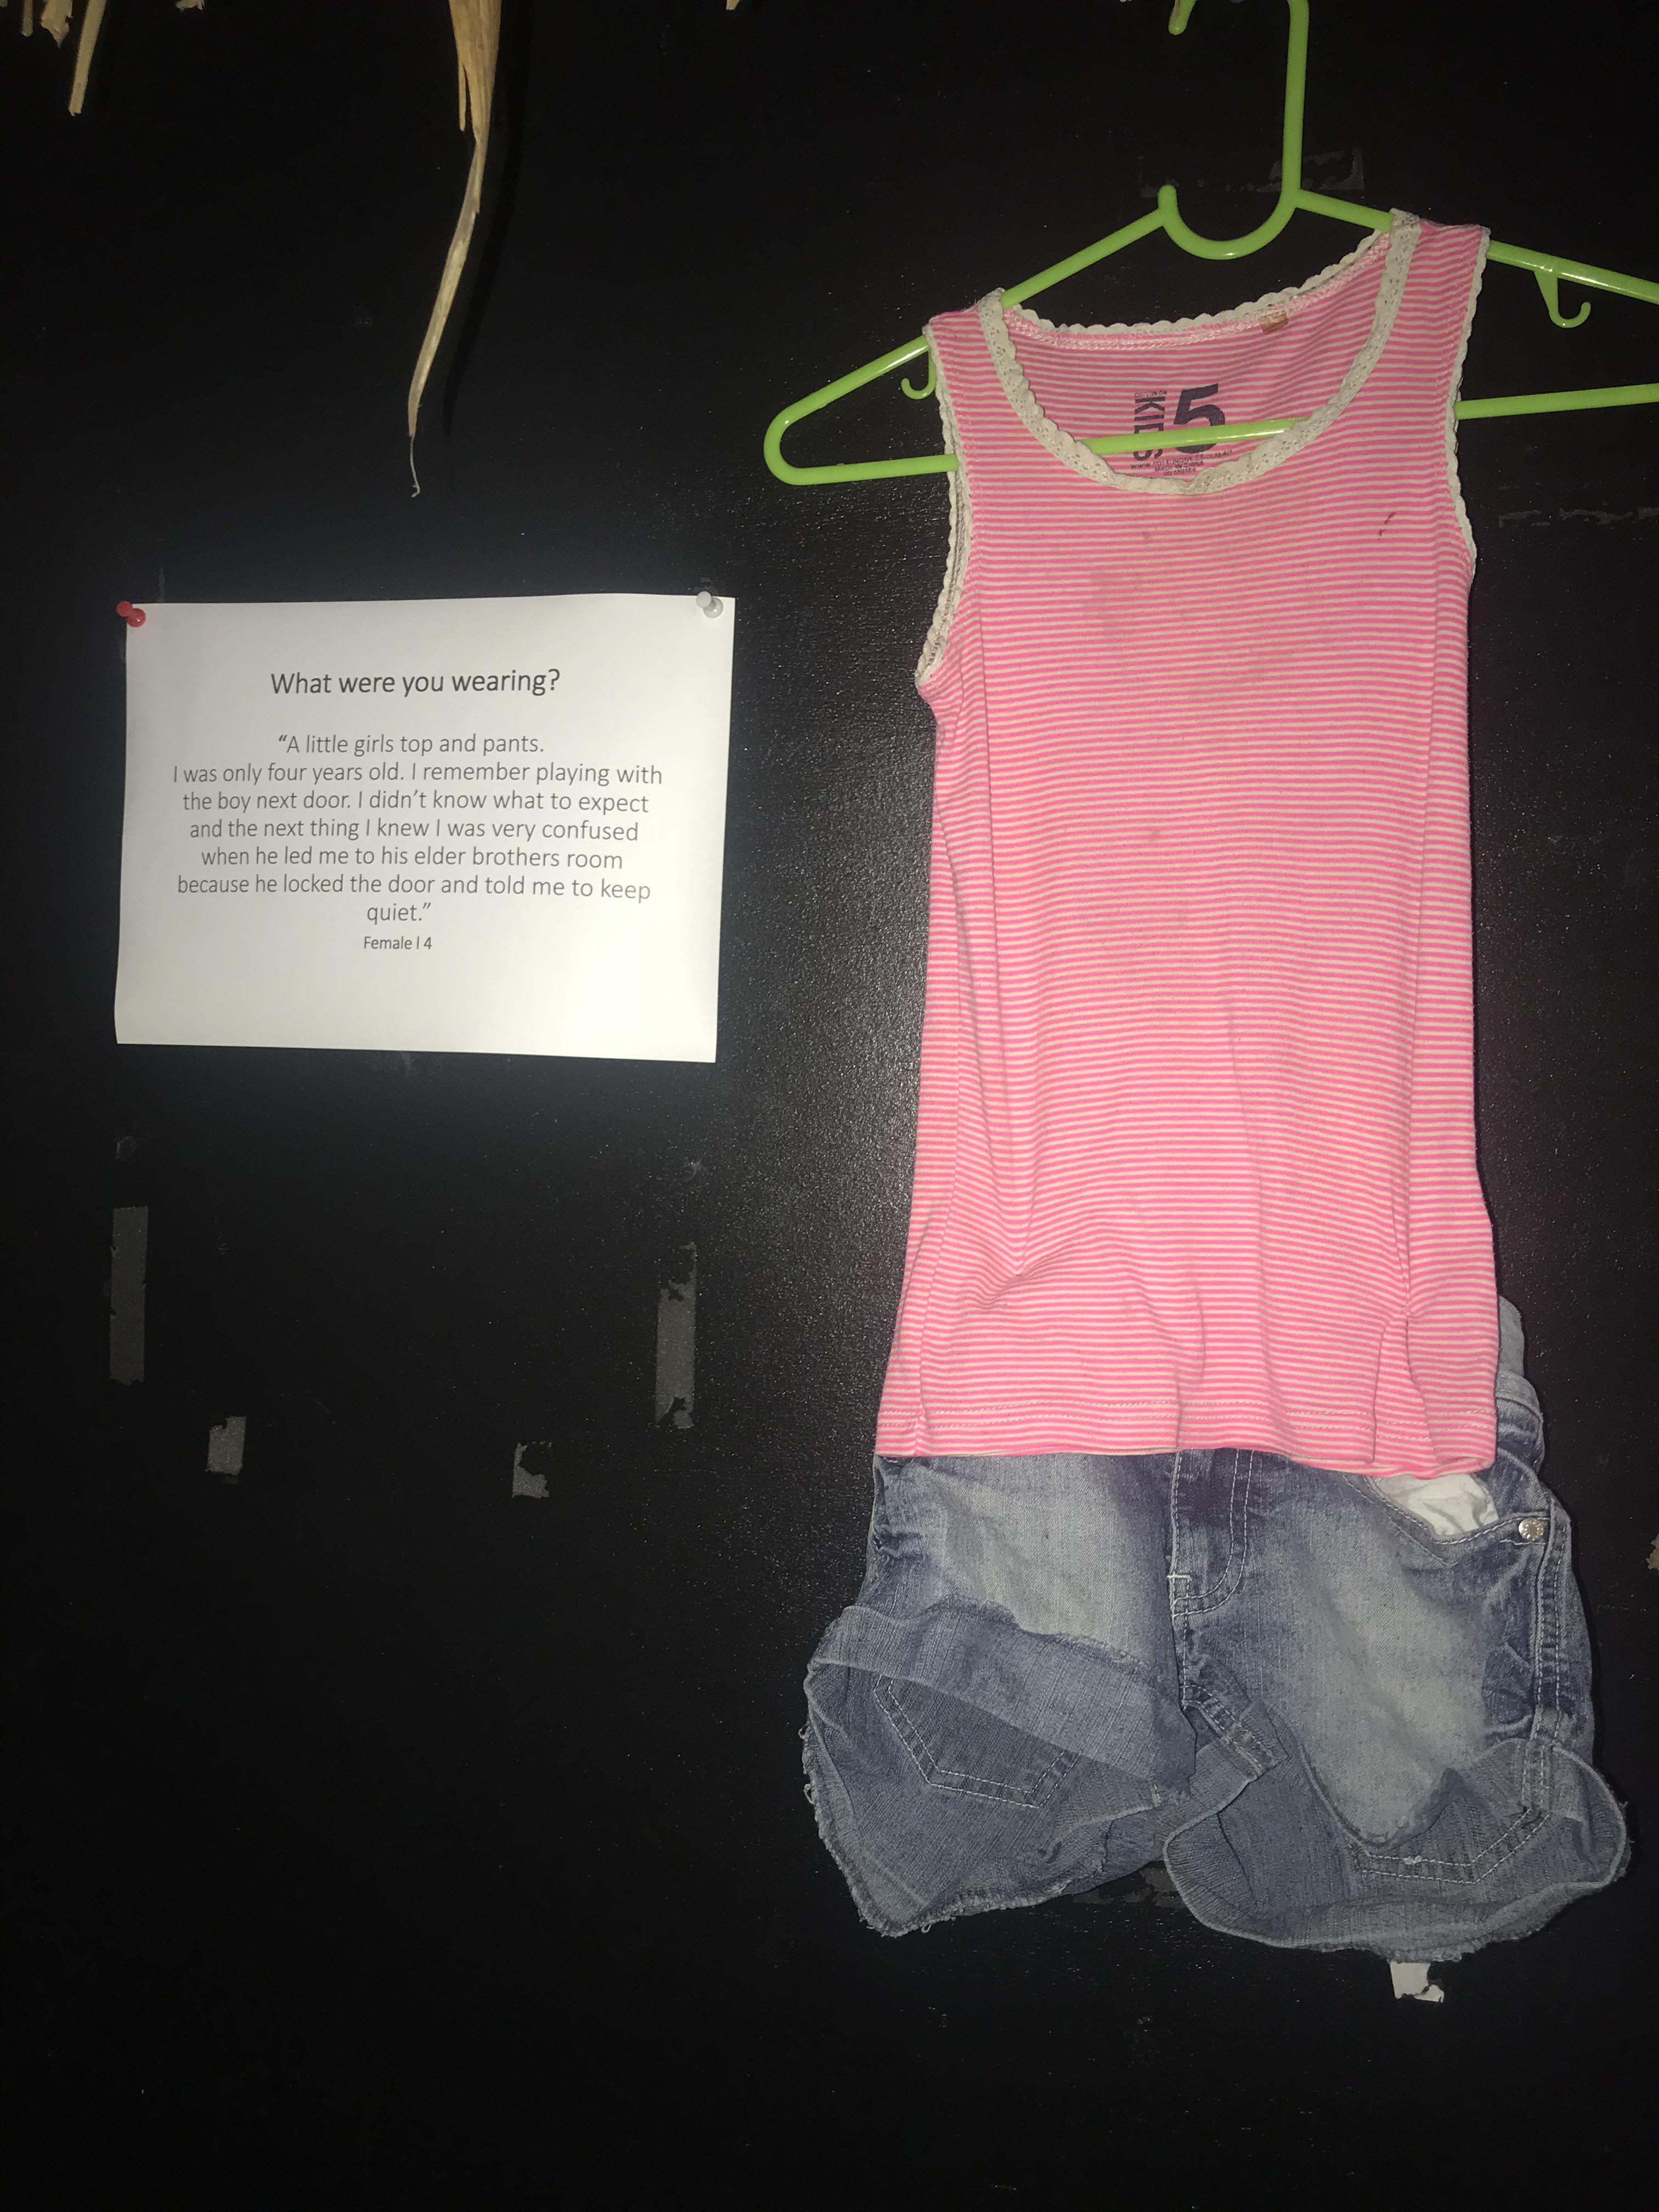 Clothing worn by rape victims on display at the Fiji Museum.